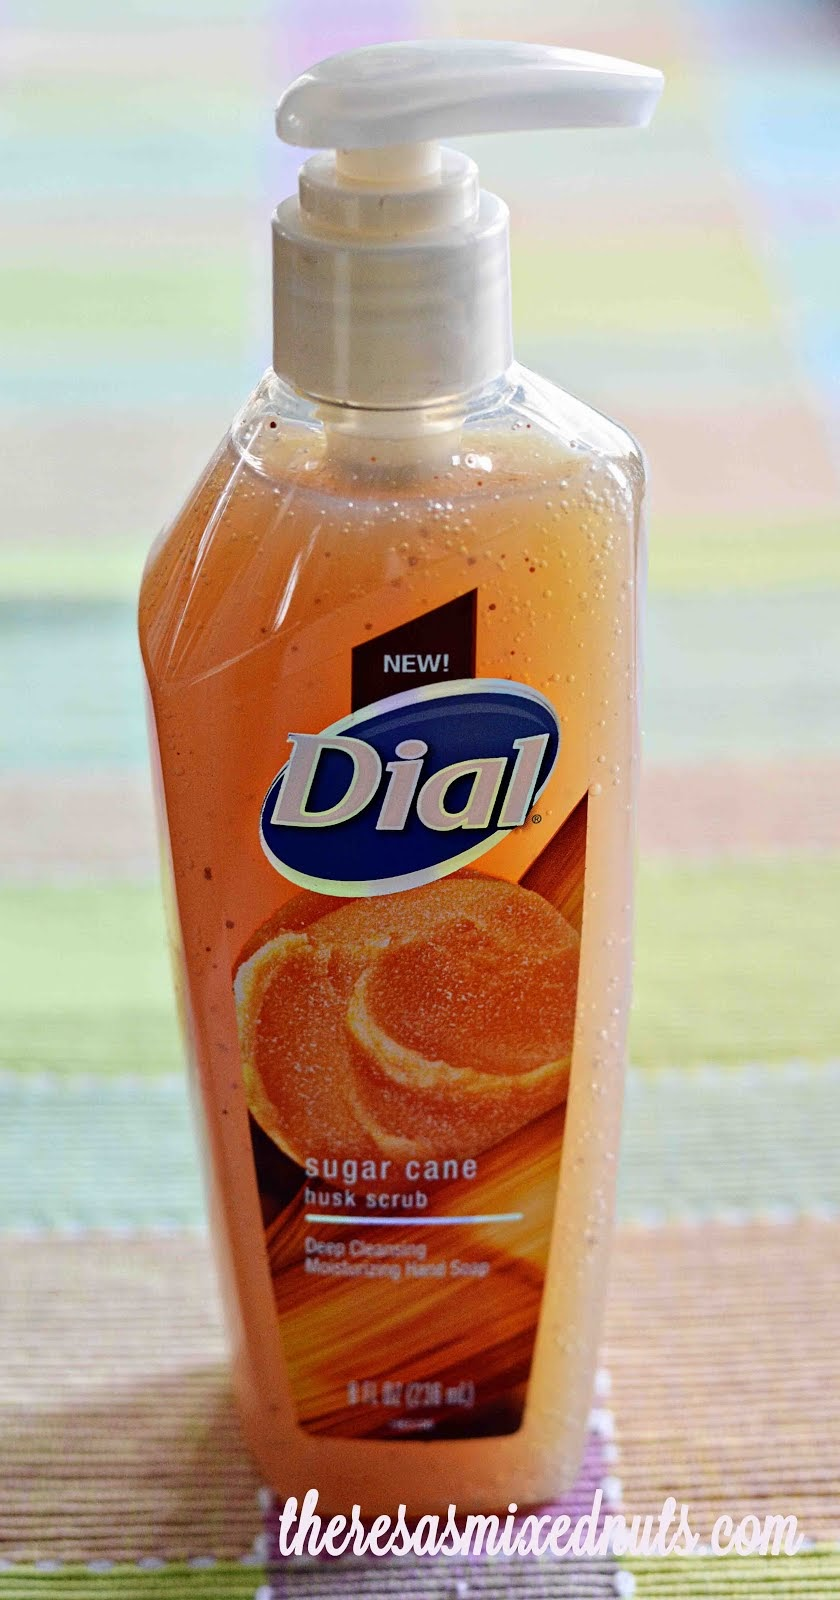 Enter To Win Dial Sugar Cane Husk Scrub Hand Soap